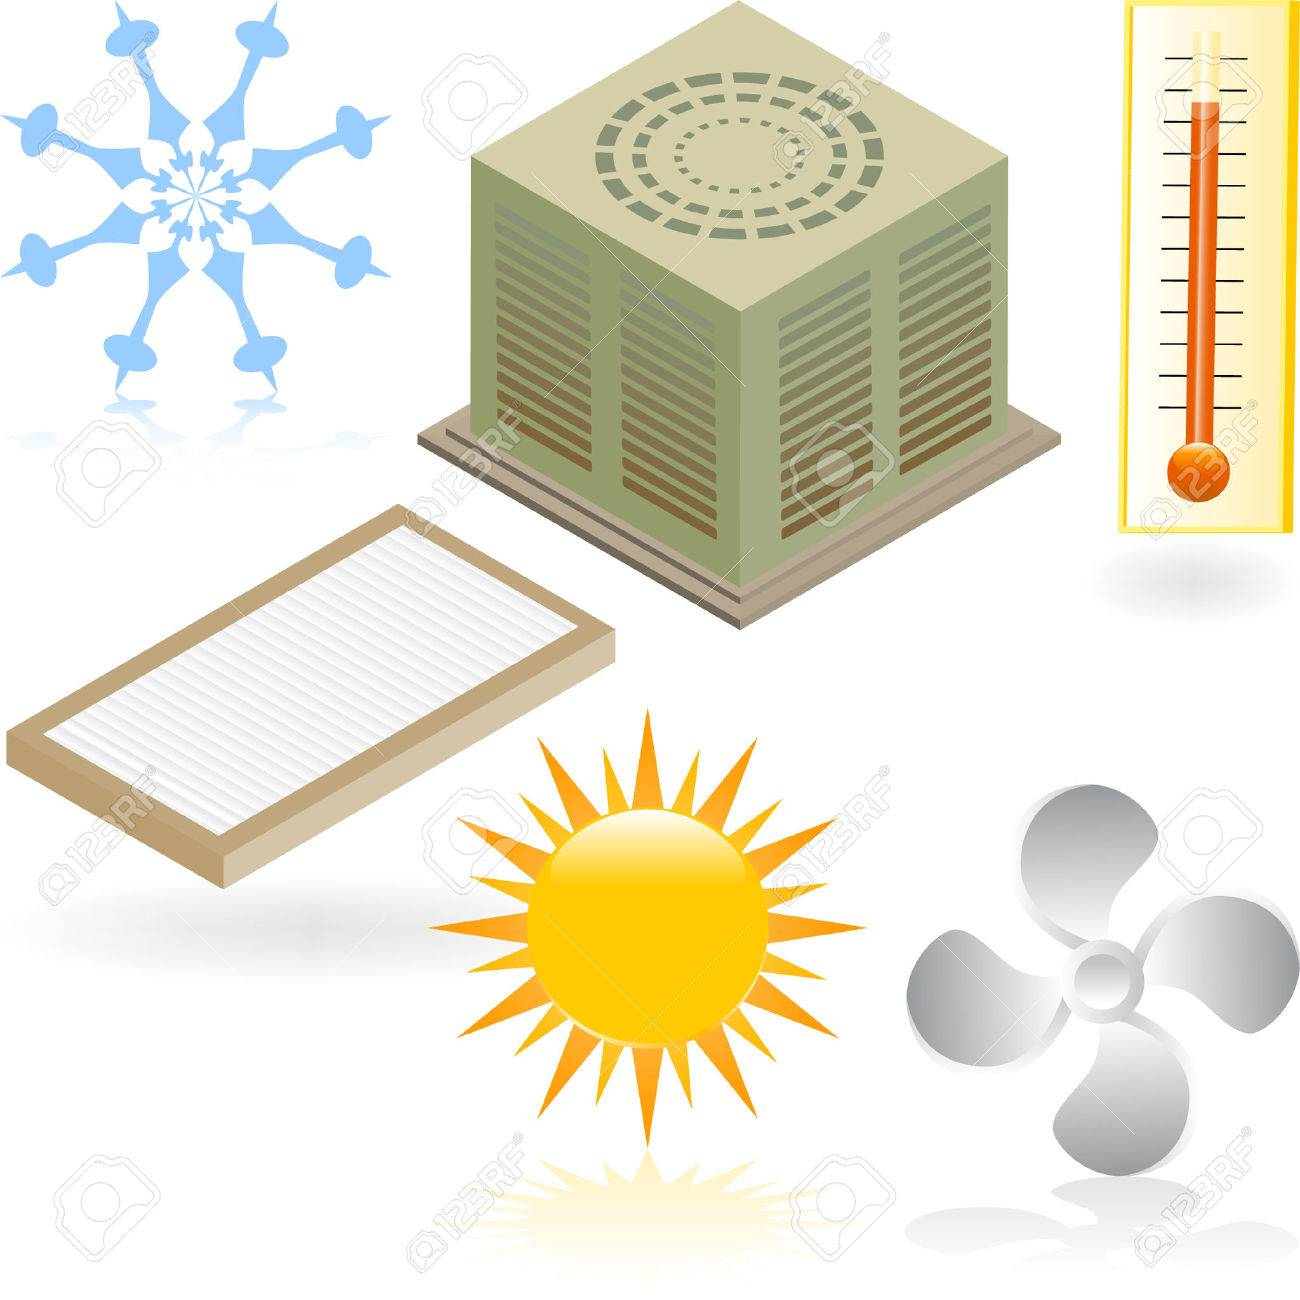 Air Conditioner Icons Stock Vector - 4904238